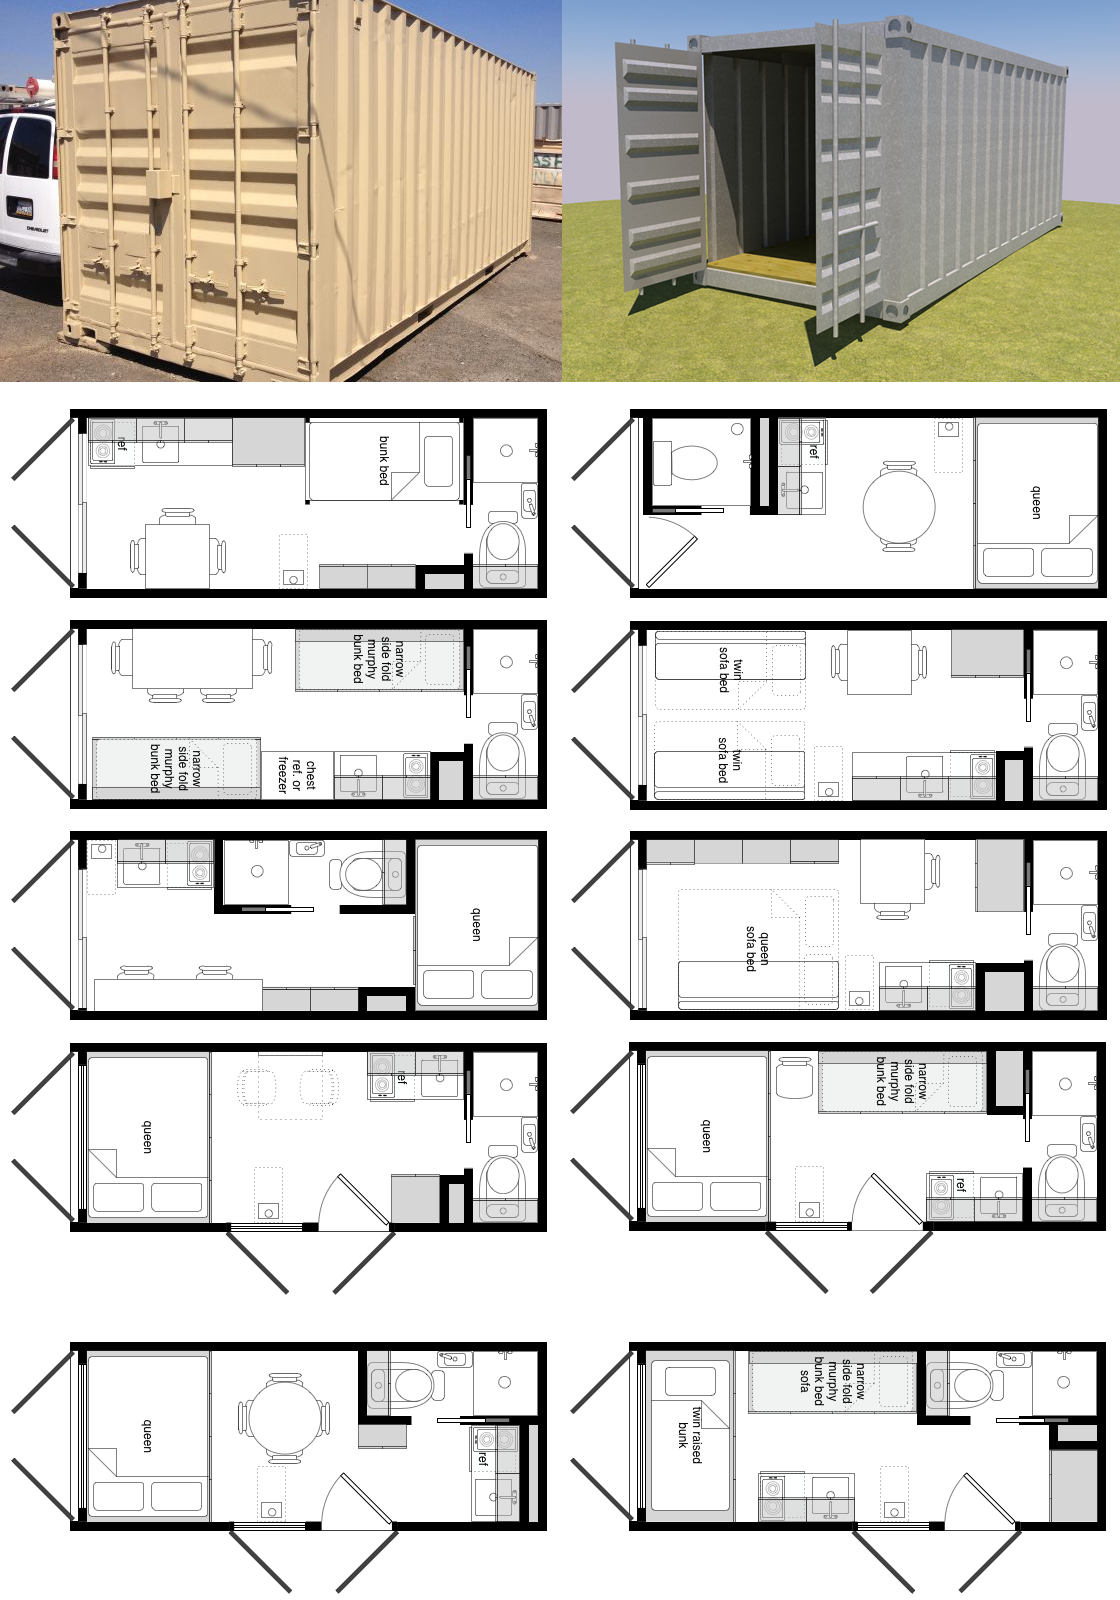 Best Kitchen Gallery: Shipping Container Home Floor Plans 20 Foot Shipping Container of Design Shipping Container Homes on rachelxblog.com